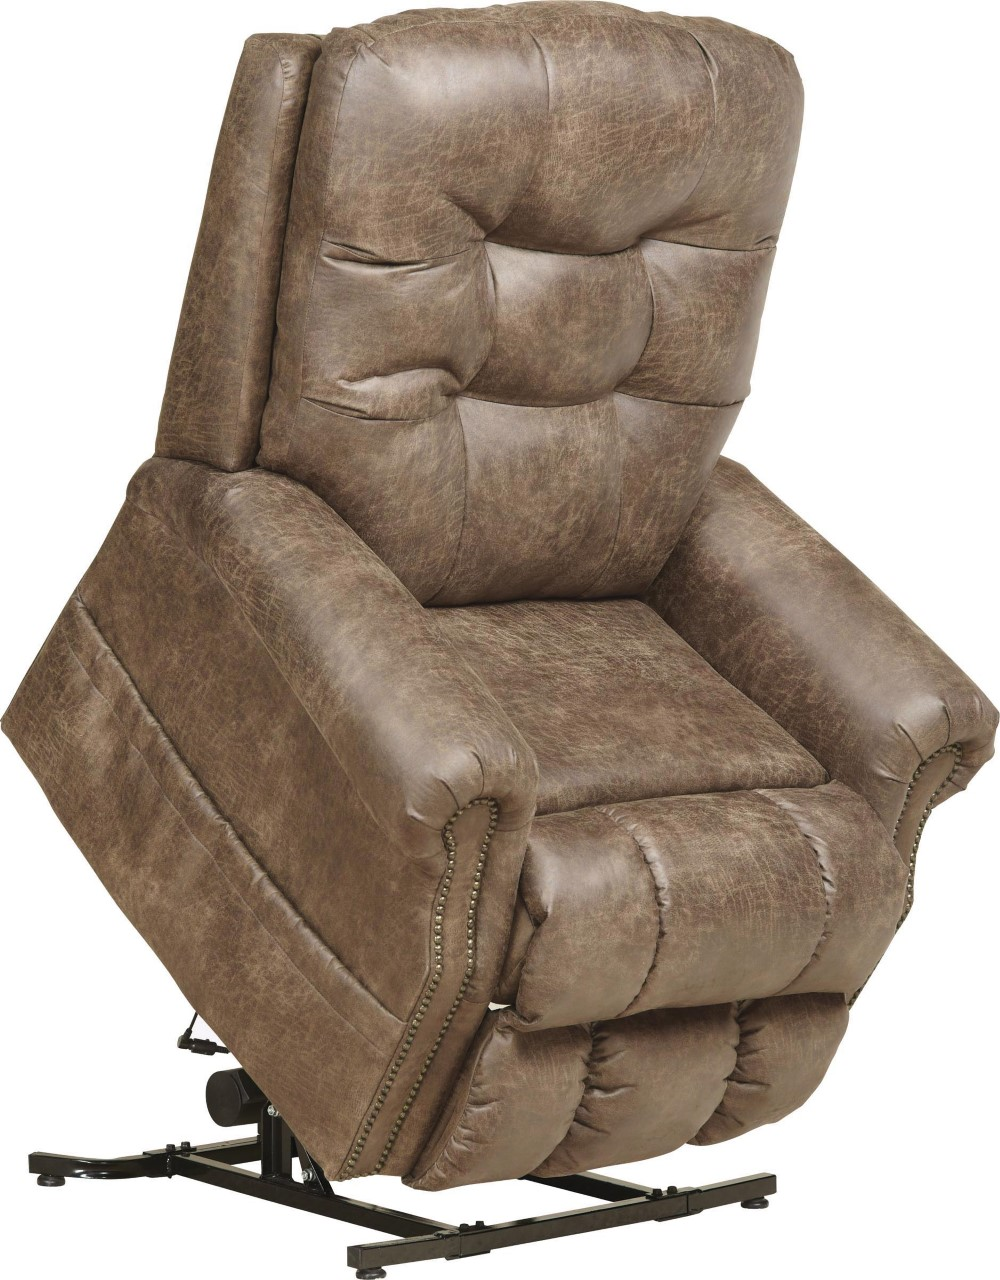 "Click photo for details • The Ramsey powerlift recliner by Catnapper® features 300LB capacity. Steel seat box. Comfort coil seating. Faux leather fabric • 37""W x 46""H x 42""D • $949.99"